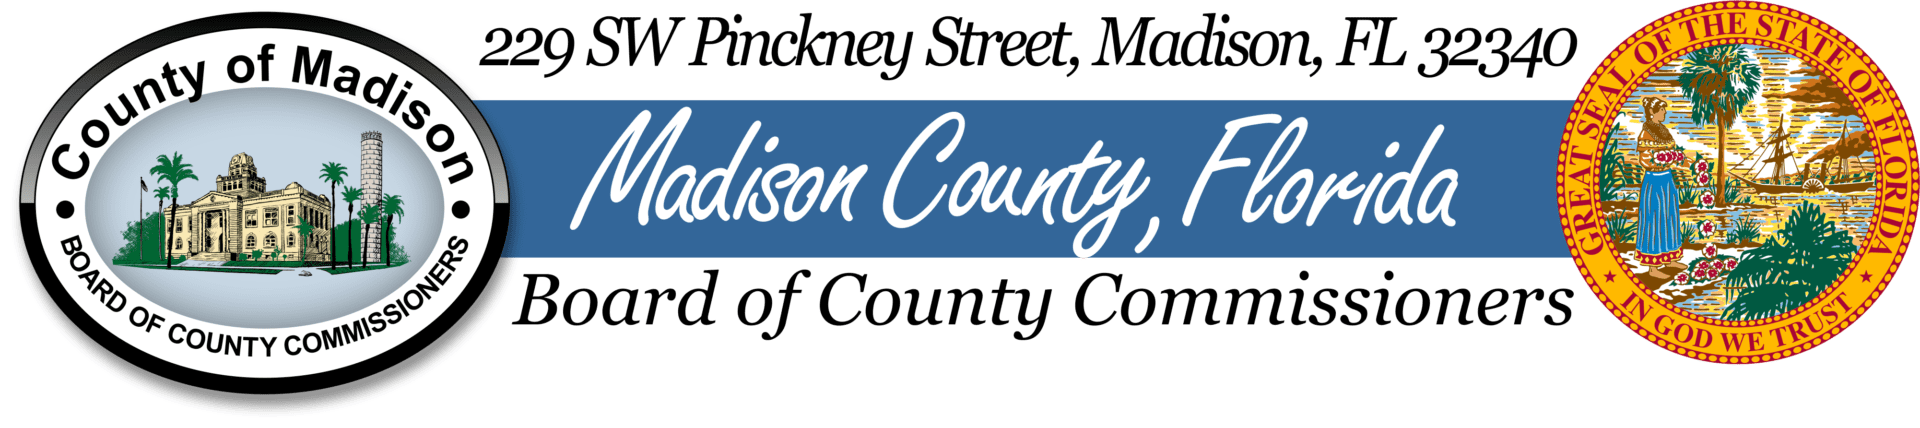 Madison County Board of County Commissioners – Official Website